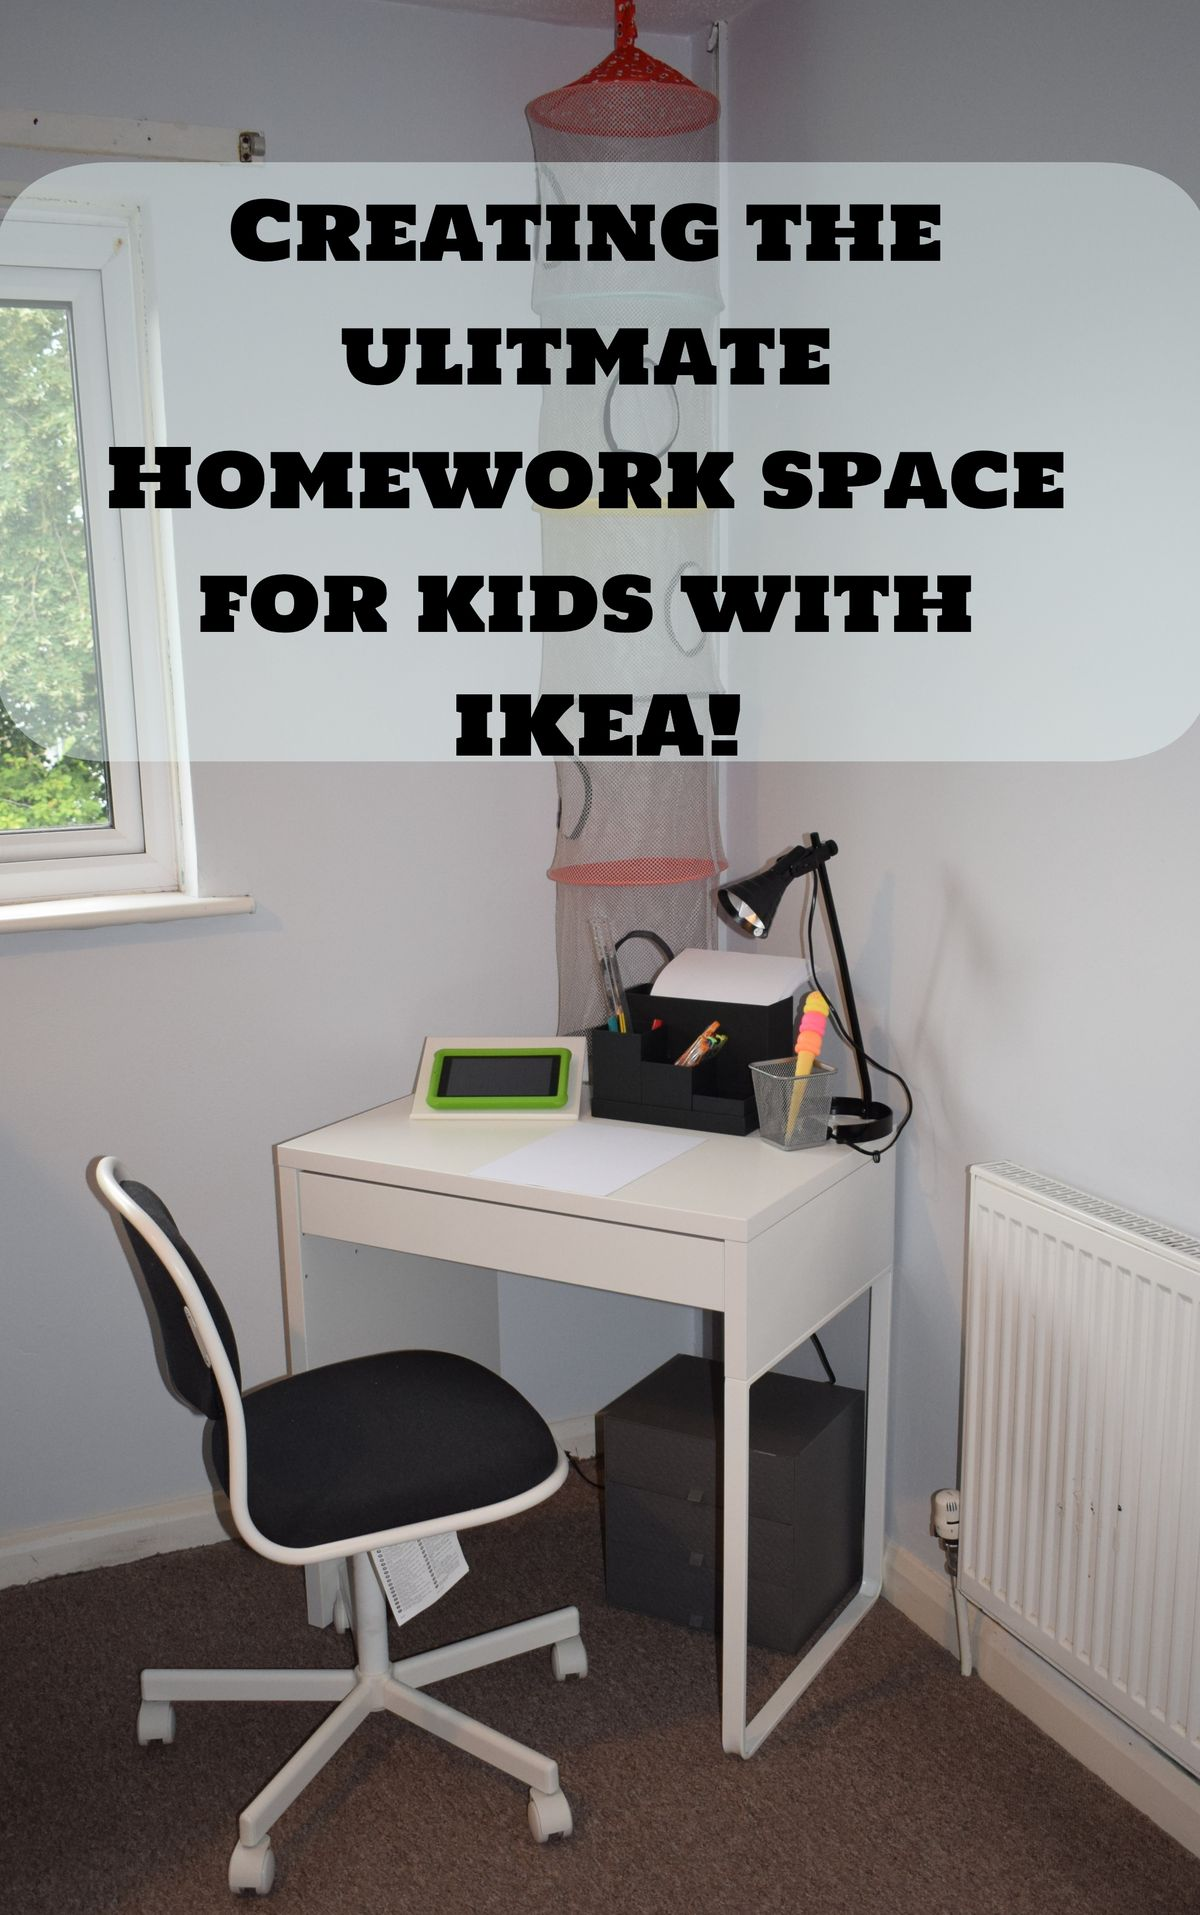 [AD] Creating The Ultimate Homework Space for Kids.